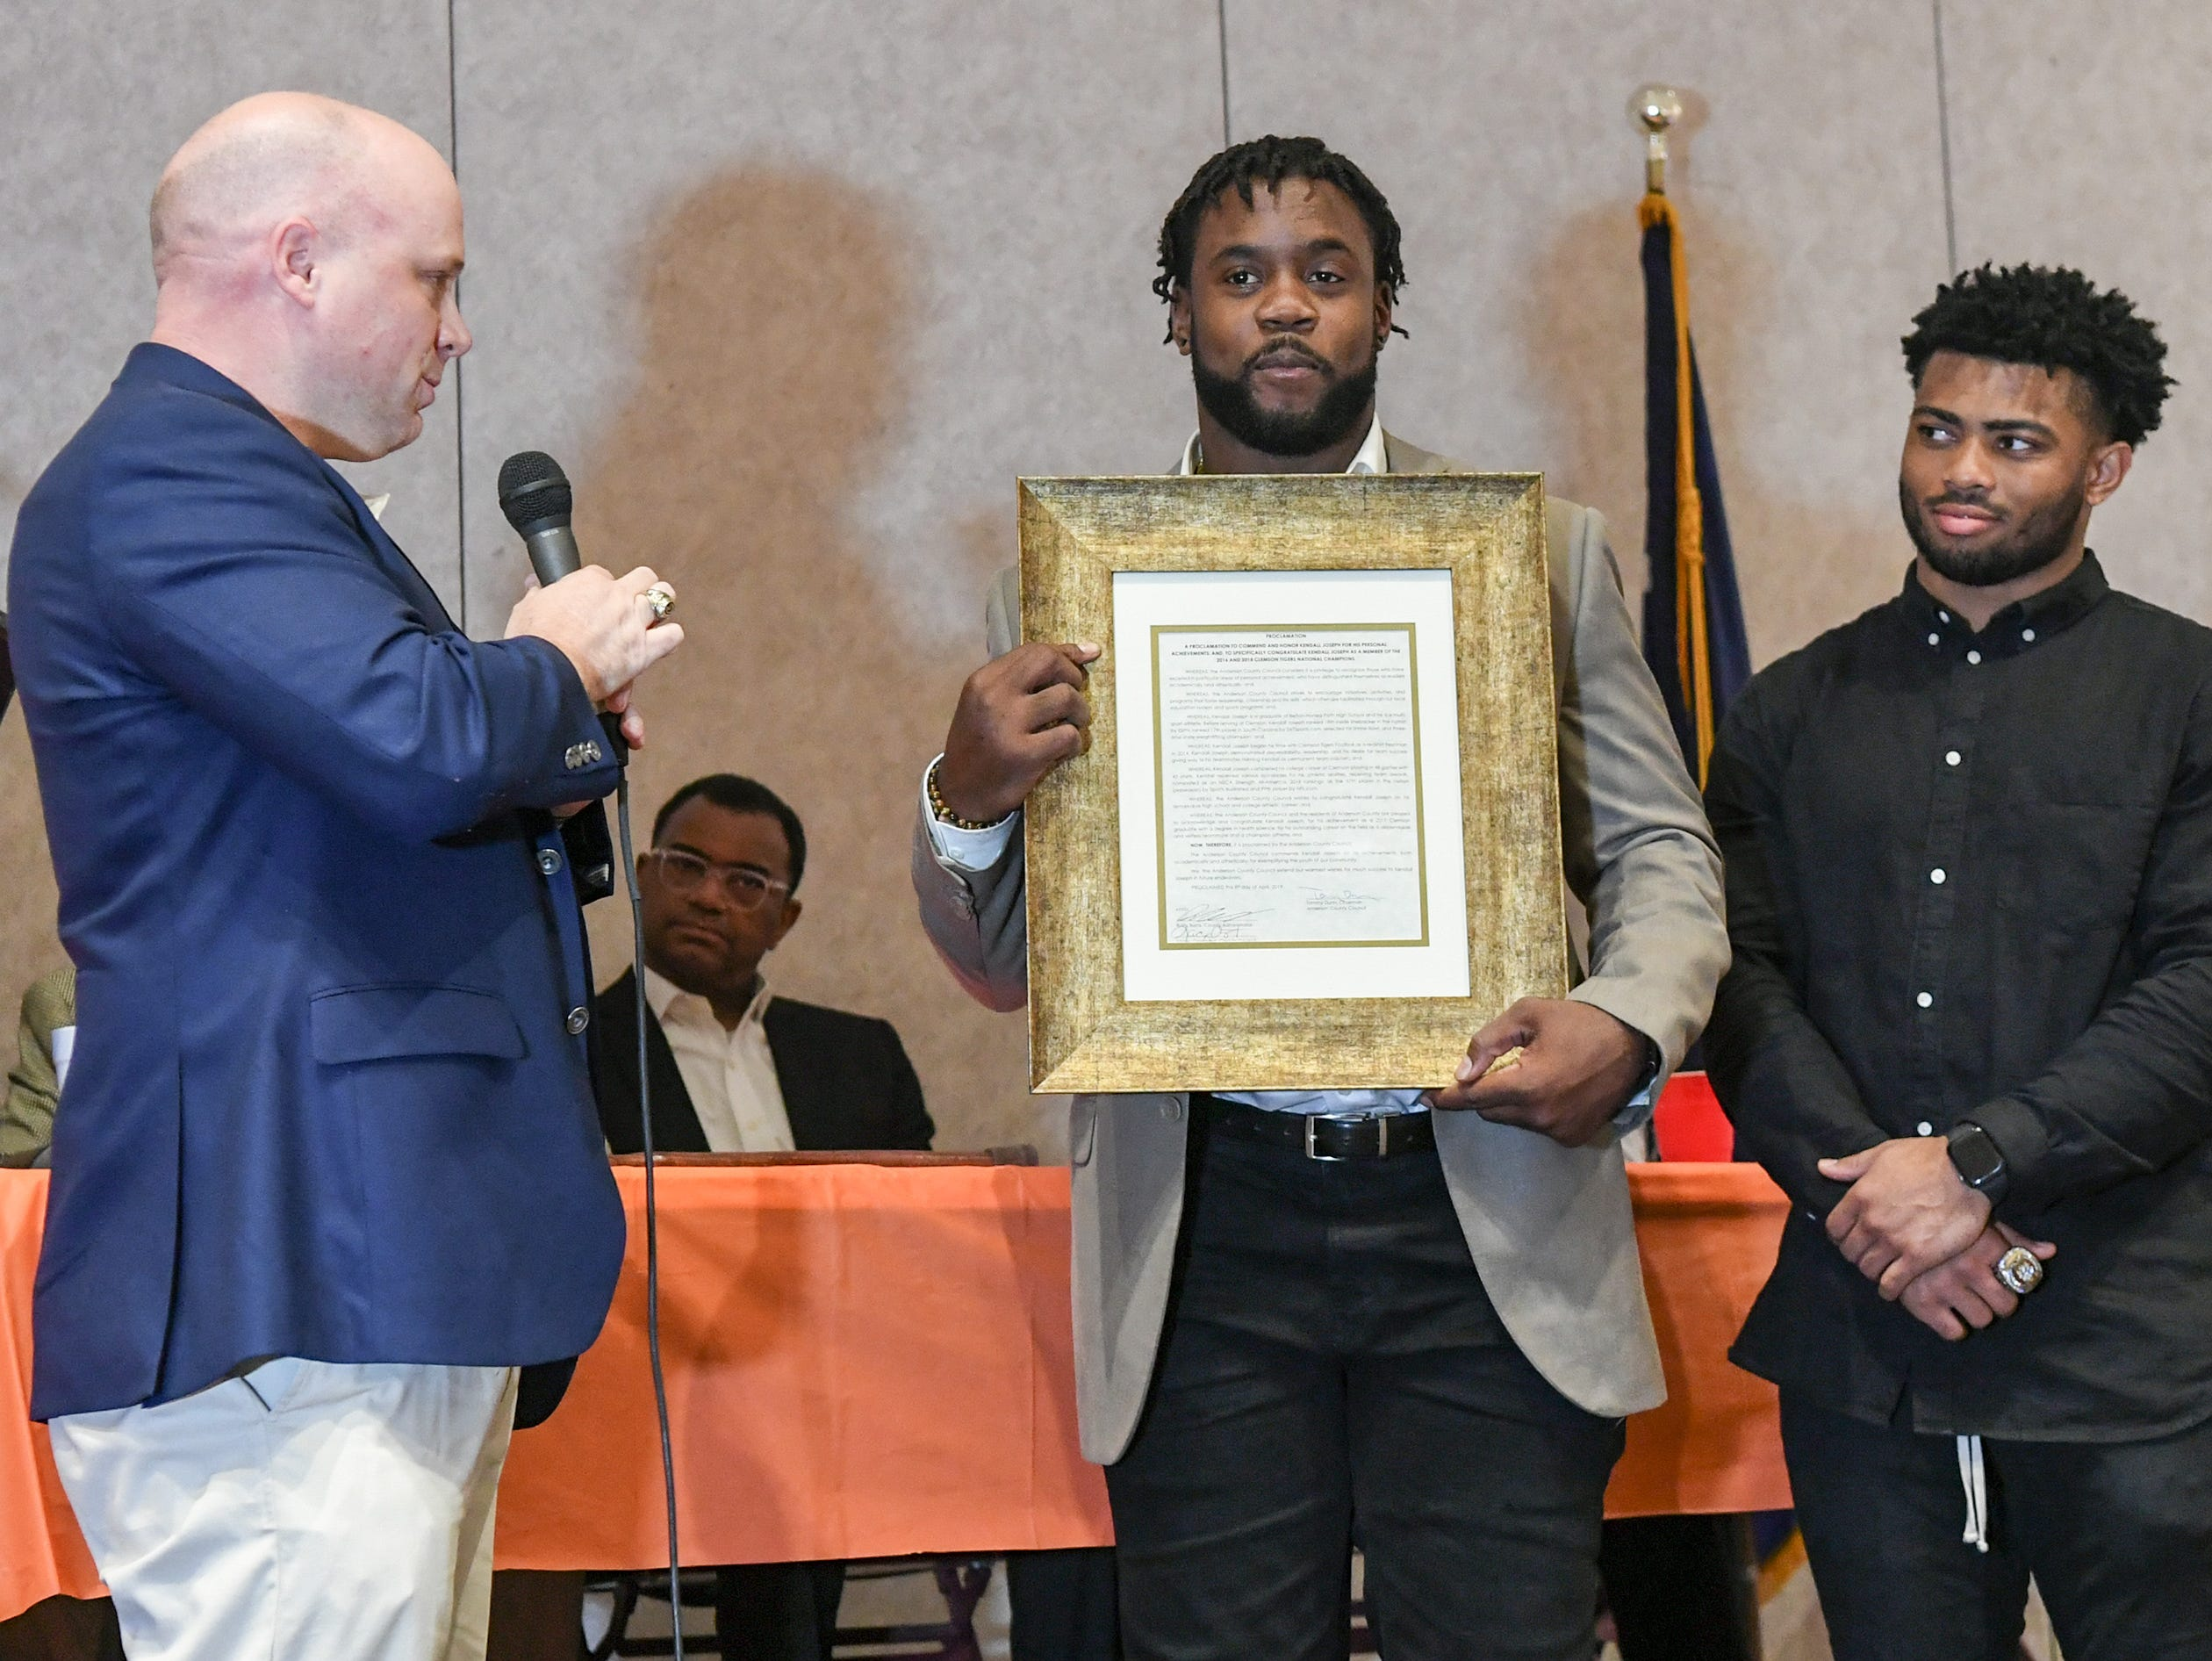 Craig Wooten, left, Anderson County Councilman makes a proclamation honoring Kendall Joseph, middle, a former Belton-Honea Path High School football player from Anderson County, and two-time college football national champion  during the Anderson Area Touchdown Club Annual Awards Banquet at the Anderson County Civic Center Monday, April 8th, 2019. Darien Rencher, right, former T.L. Hanna High player, was honored later by councilman Brett Sanders.